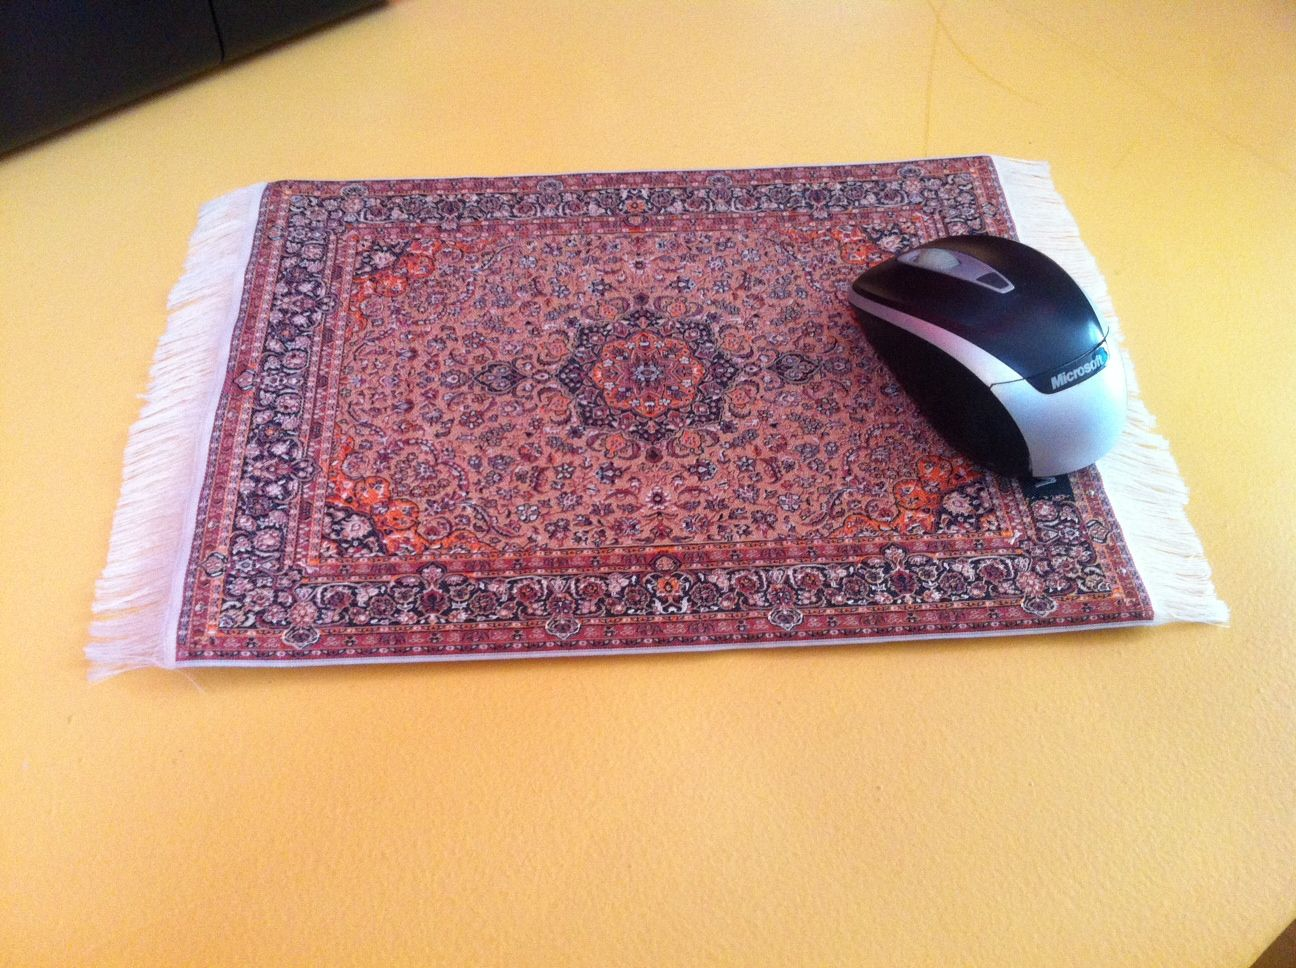 Persian Rug Mouse pad 100% Hand made 2 500 years old weaving technique www.galaxierouge.com